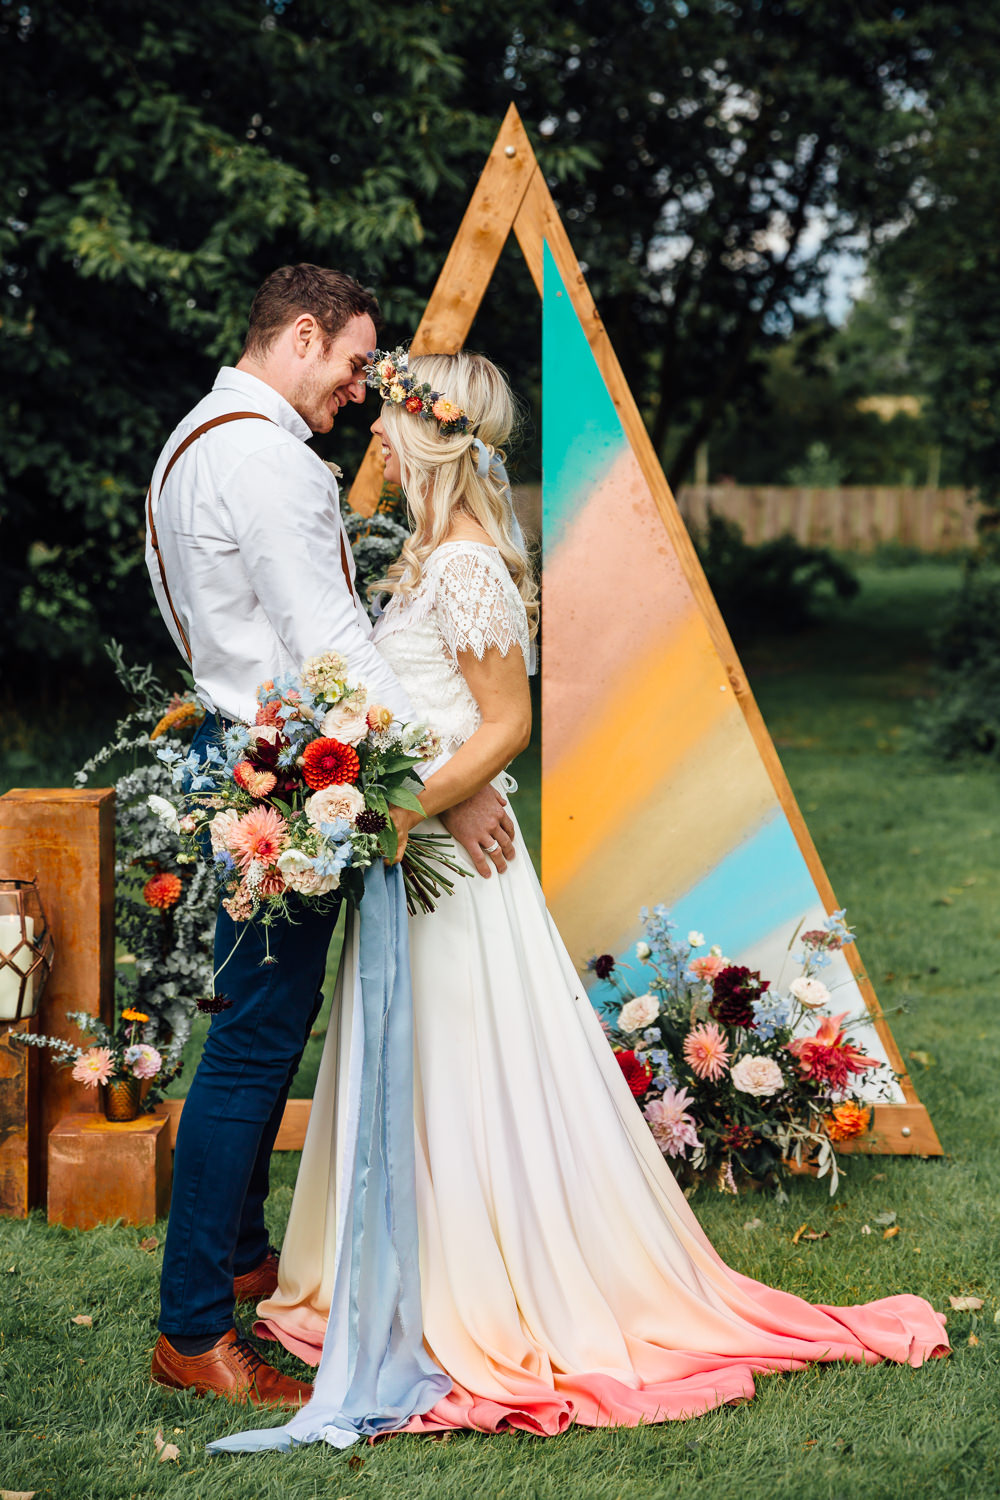 Autumn Festival Wedding Ideas Indigo and Violet Photography Triangle Wooden Painted Backdrop Decor Flowers